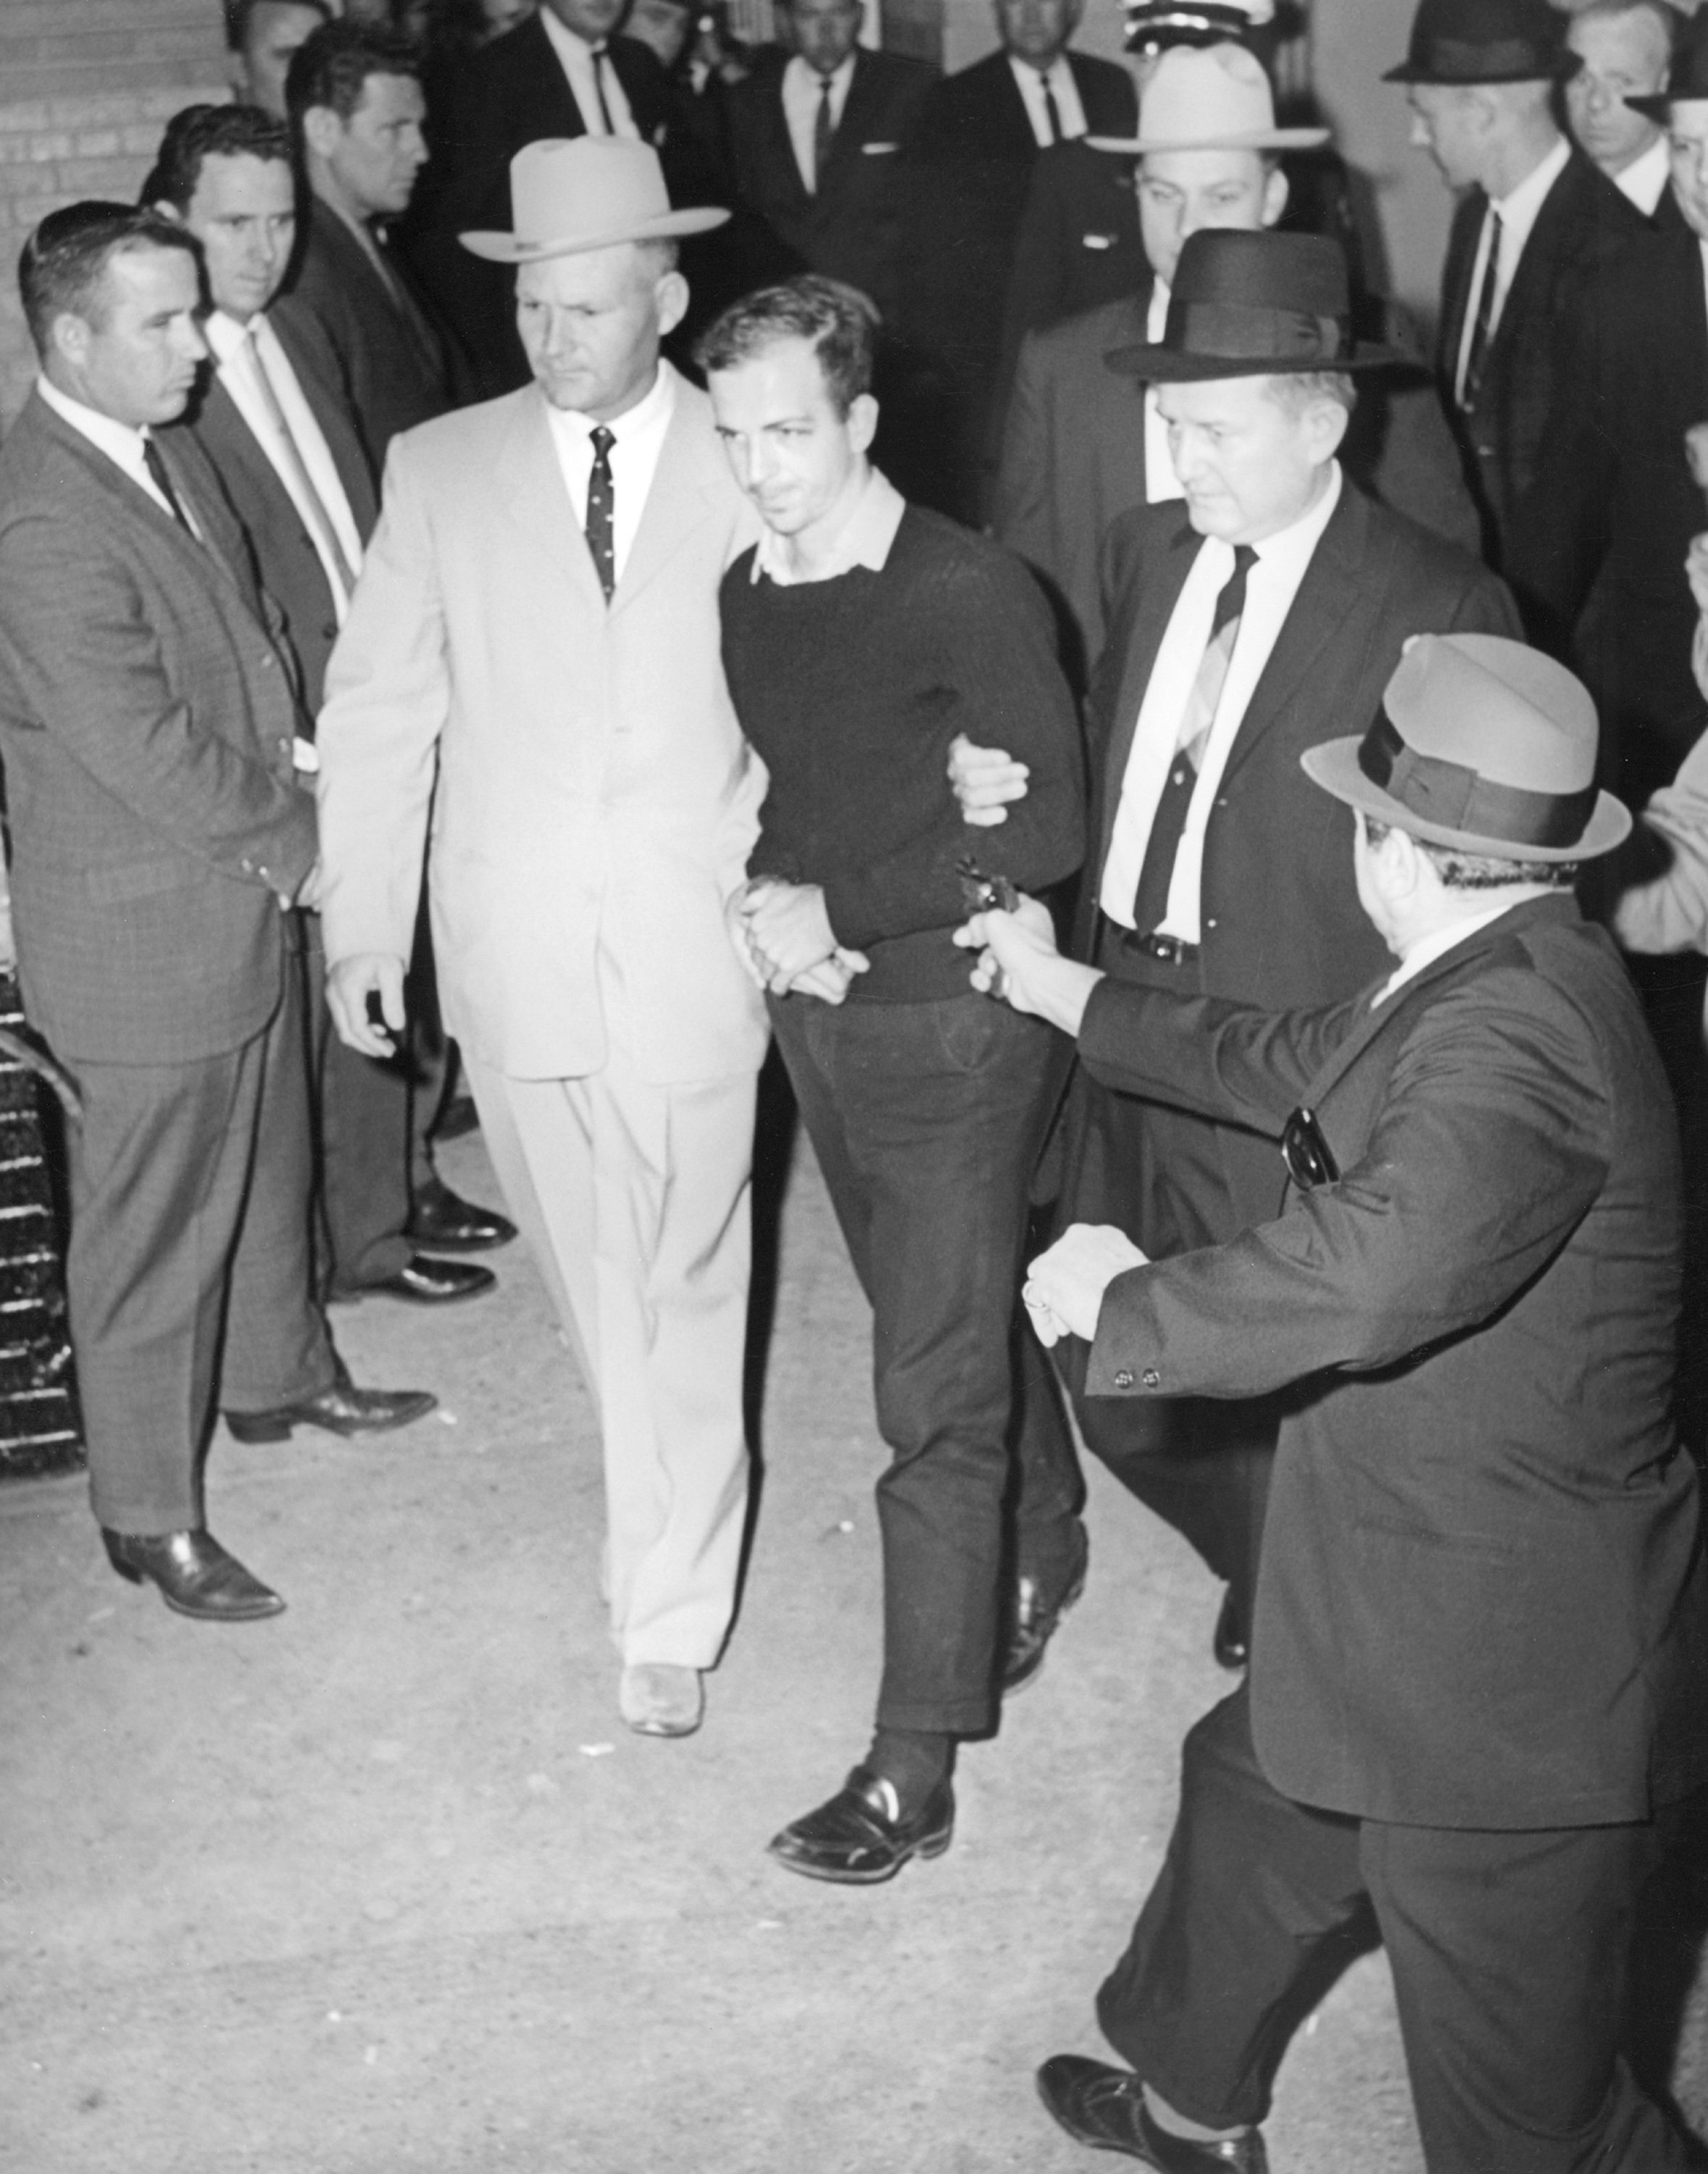 Lee Harvey Oswald being shot by Jack Ruby as Oswald is being moved by police, 1963